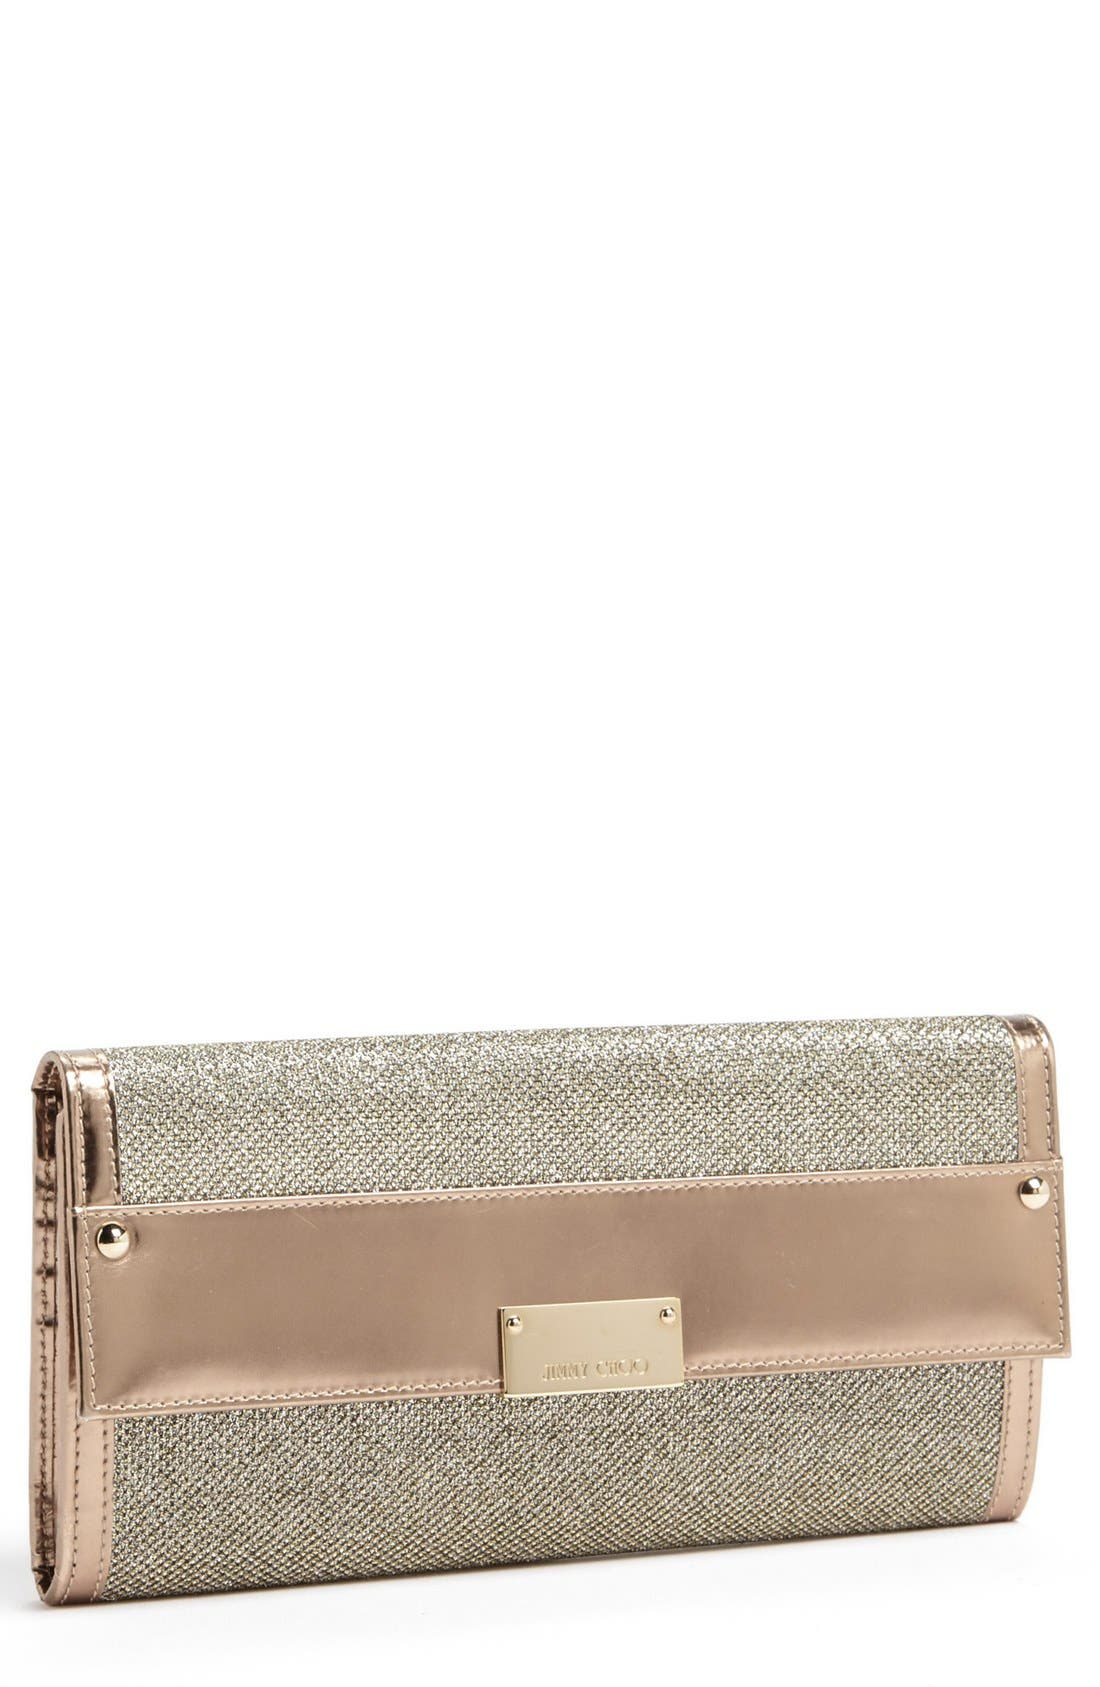 Alternate Image 1 Selected - Jimmy Choo 'Reese' Lamé Glitter Clutch